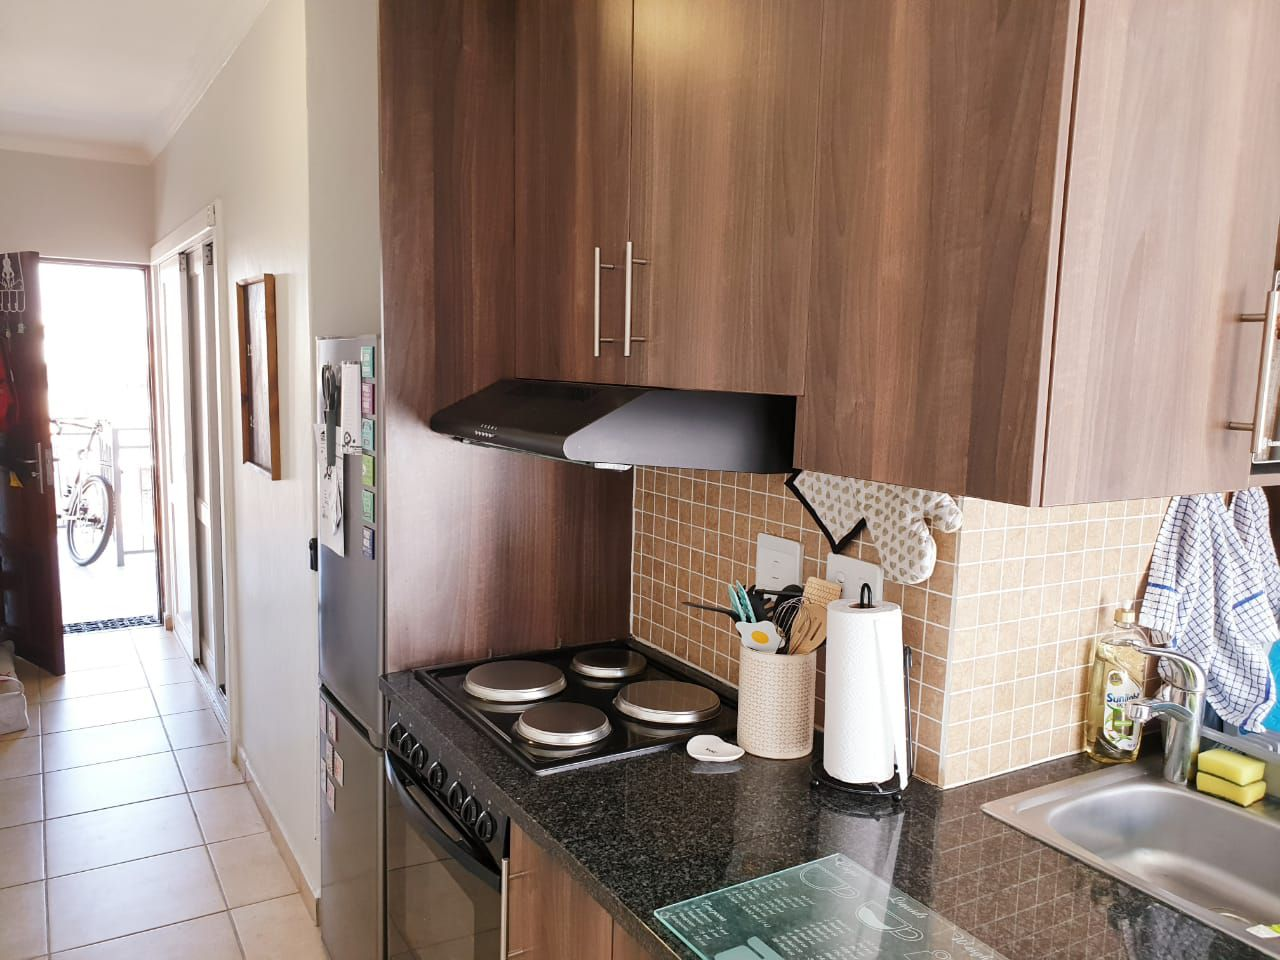 Apartment in Bult - WhatsApp Image 2019-04-30 at 14.18.47.jpeg